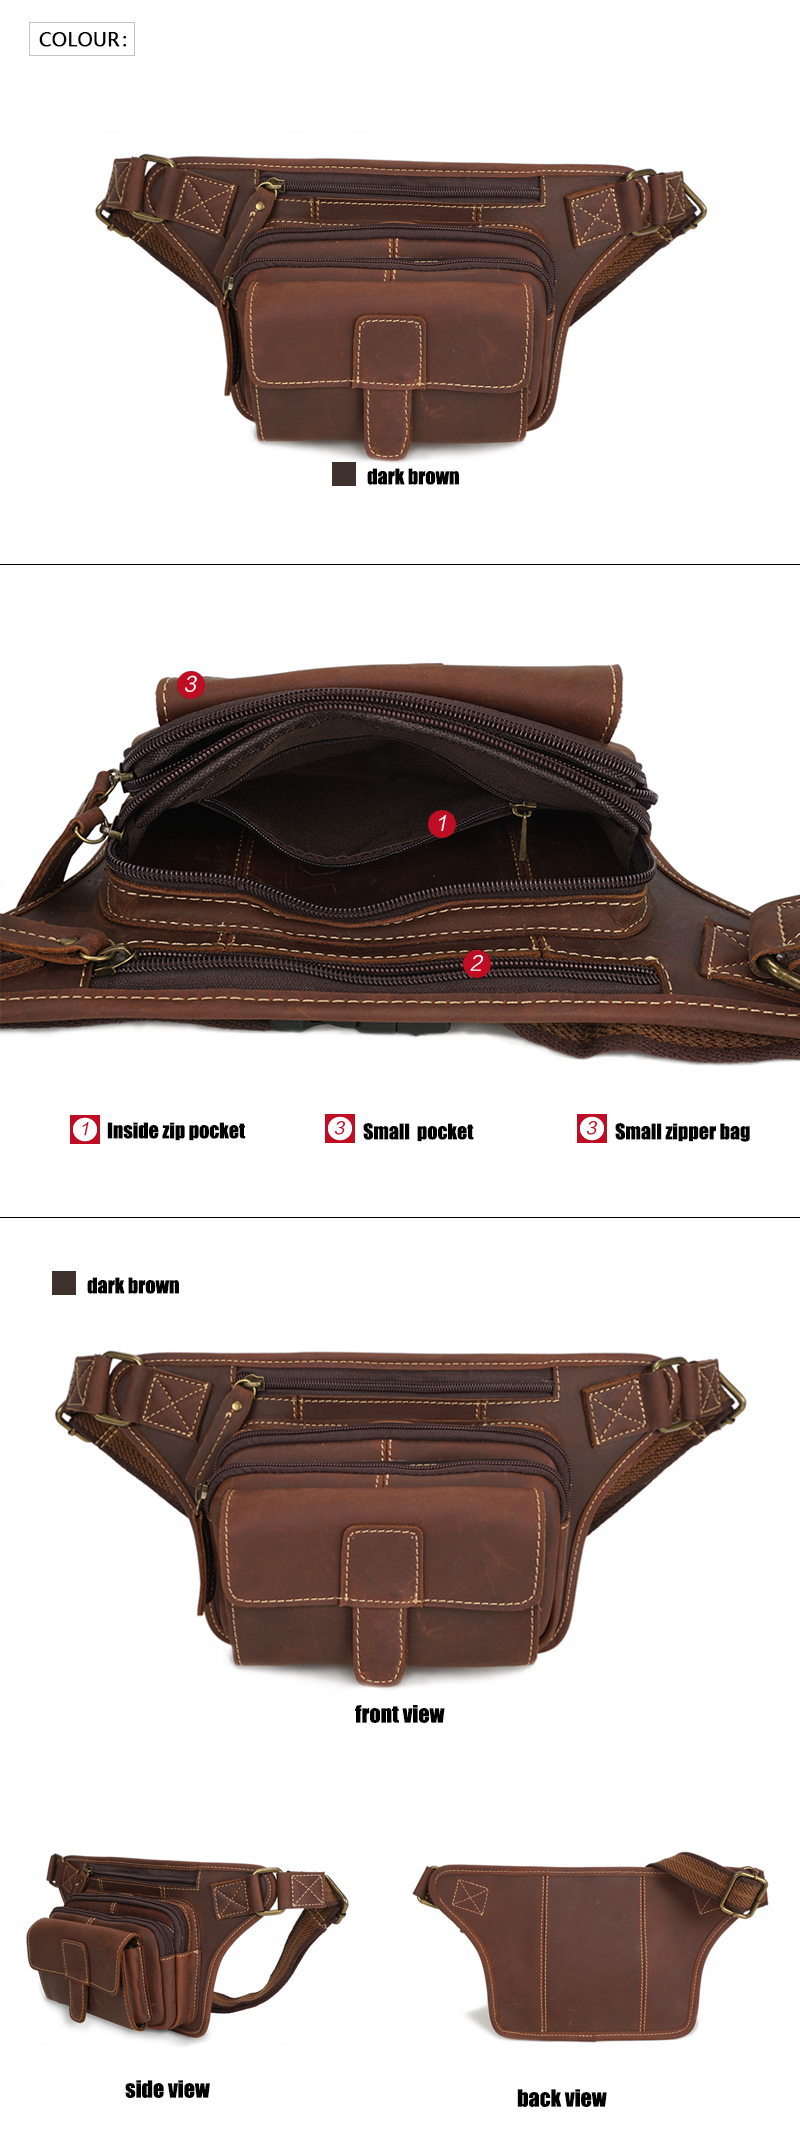 YD-3522 New arrival unisex crazy horse leather waist fanny pack